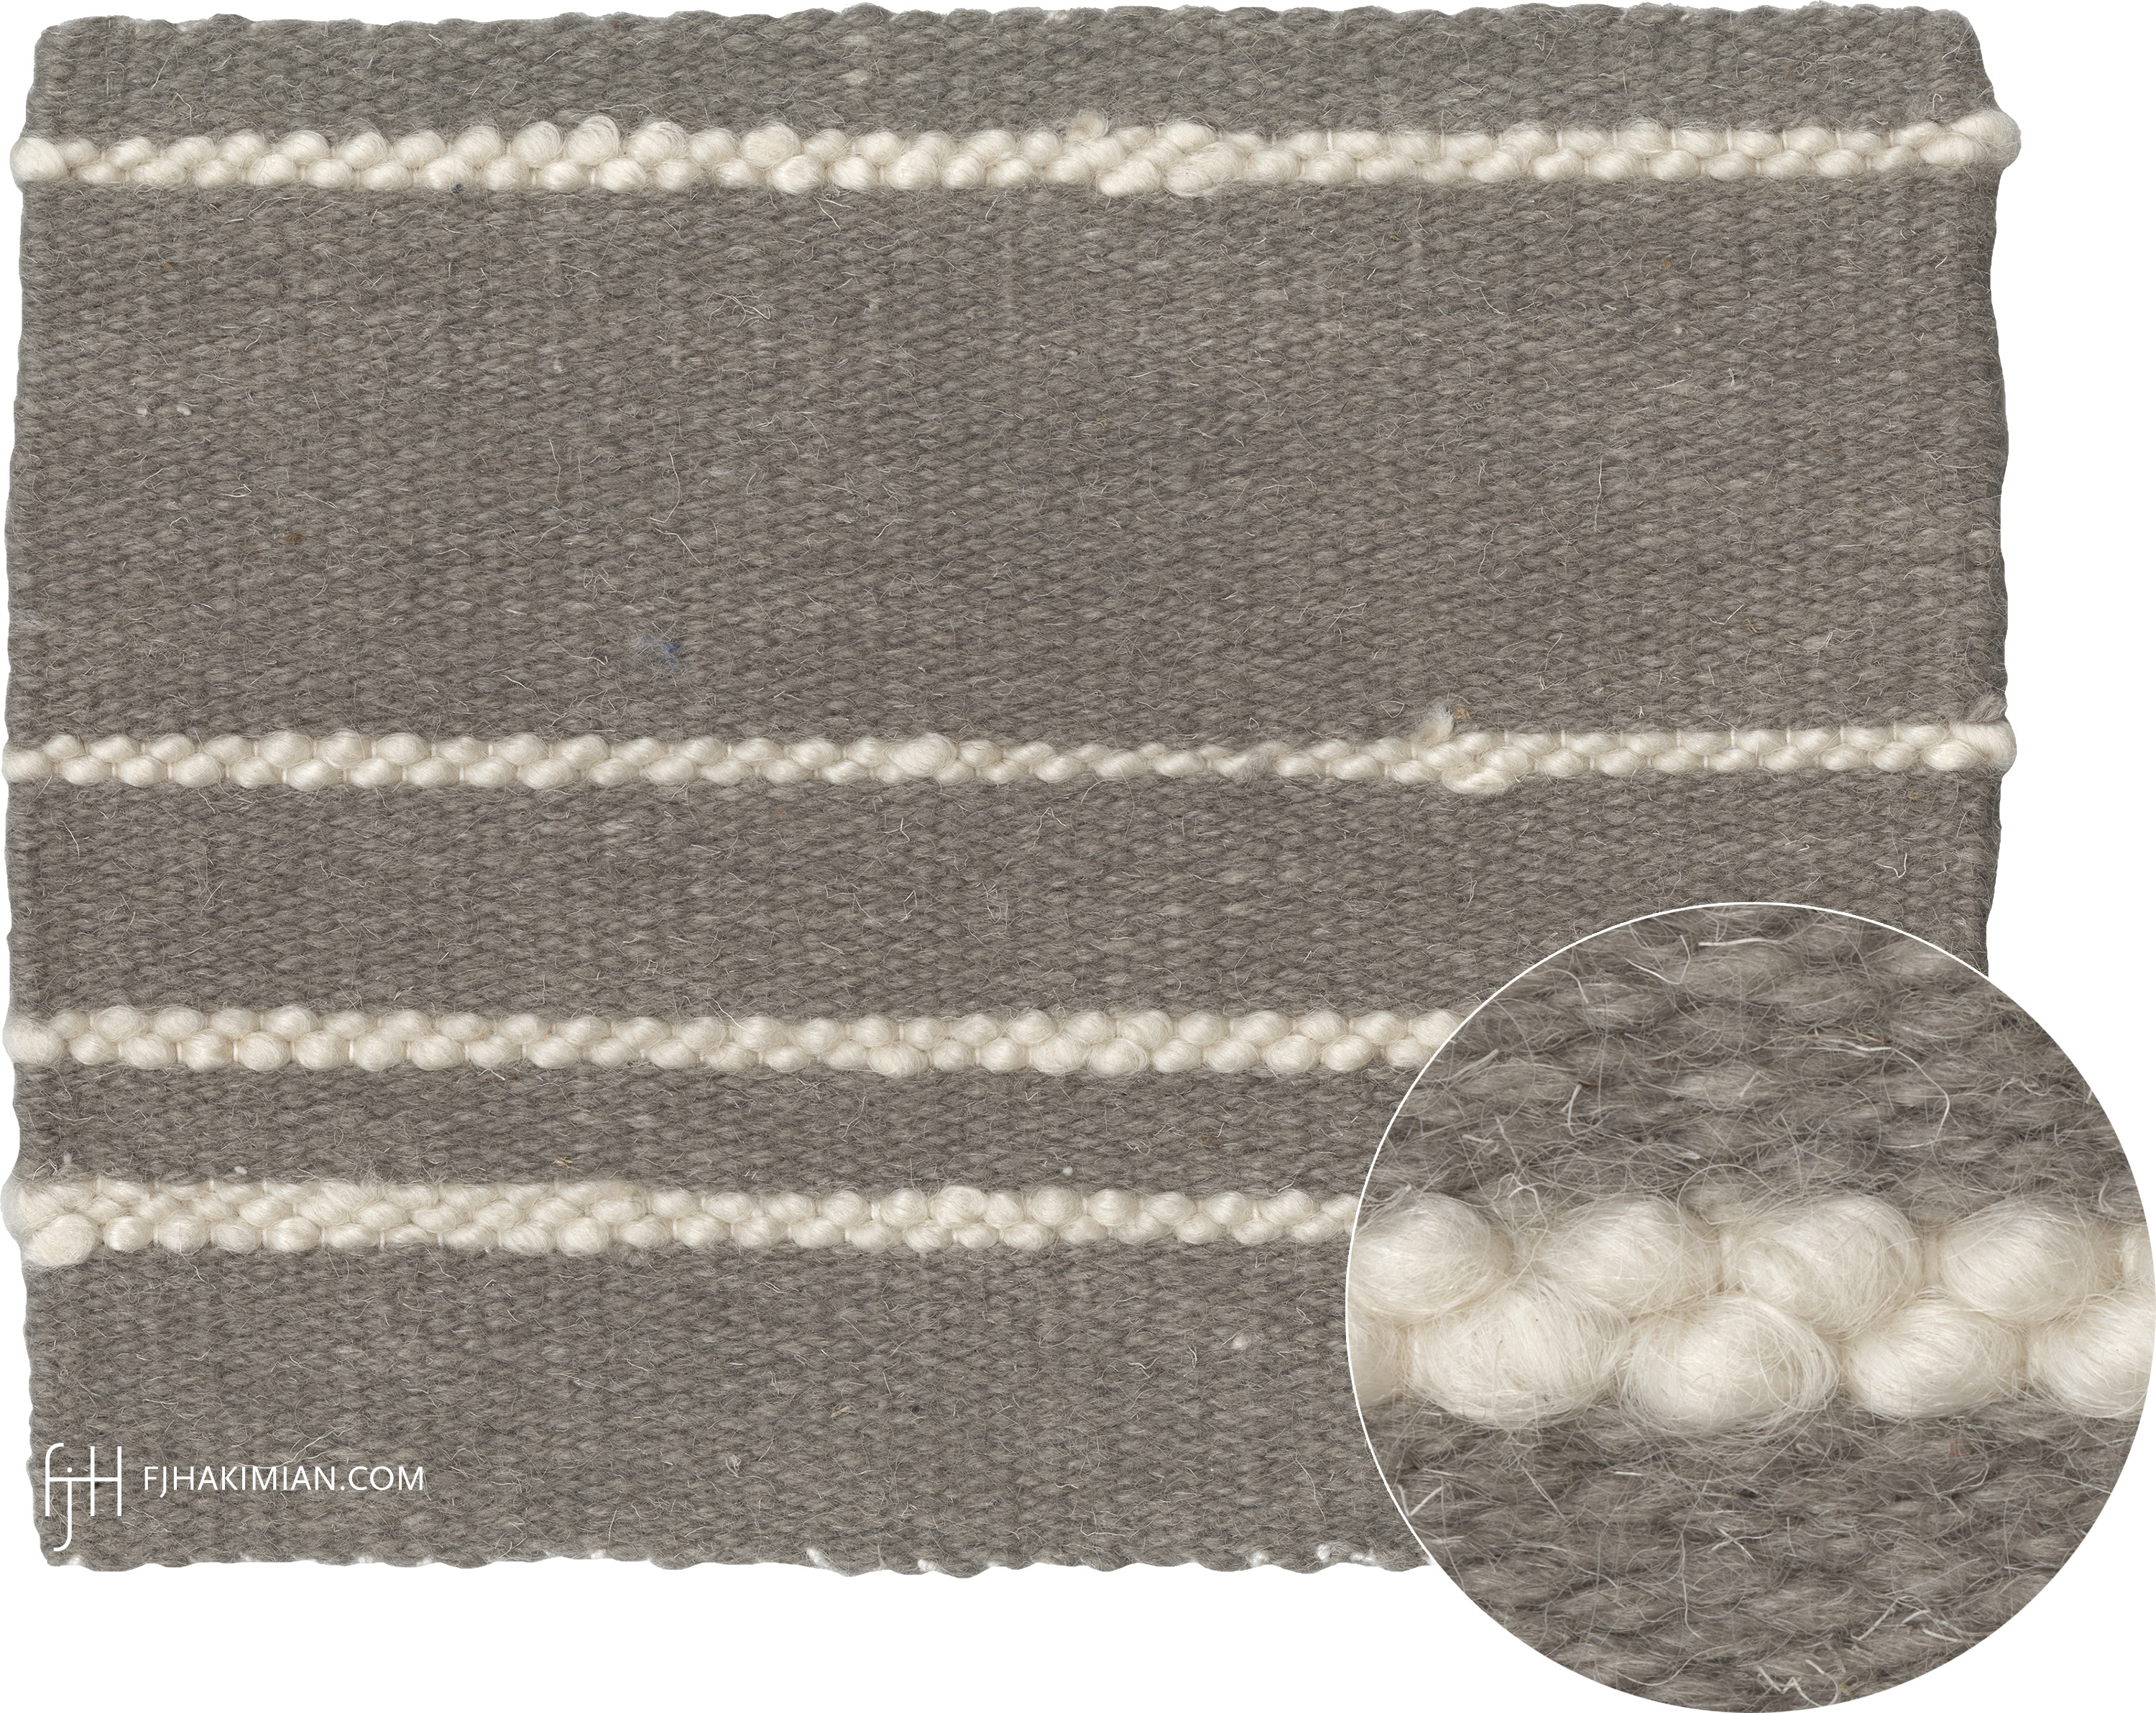 #57200-SW-Fine_Wool-GreyWool_with_WhiteMohairAccents-FJ_Hakimian